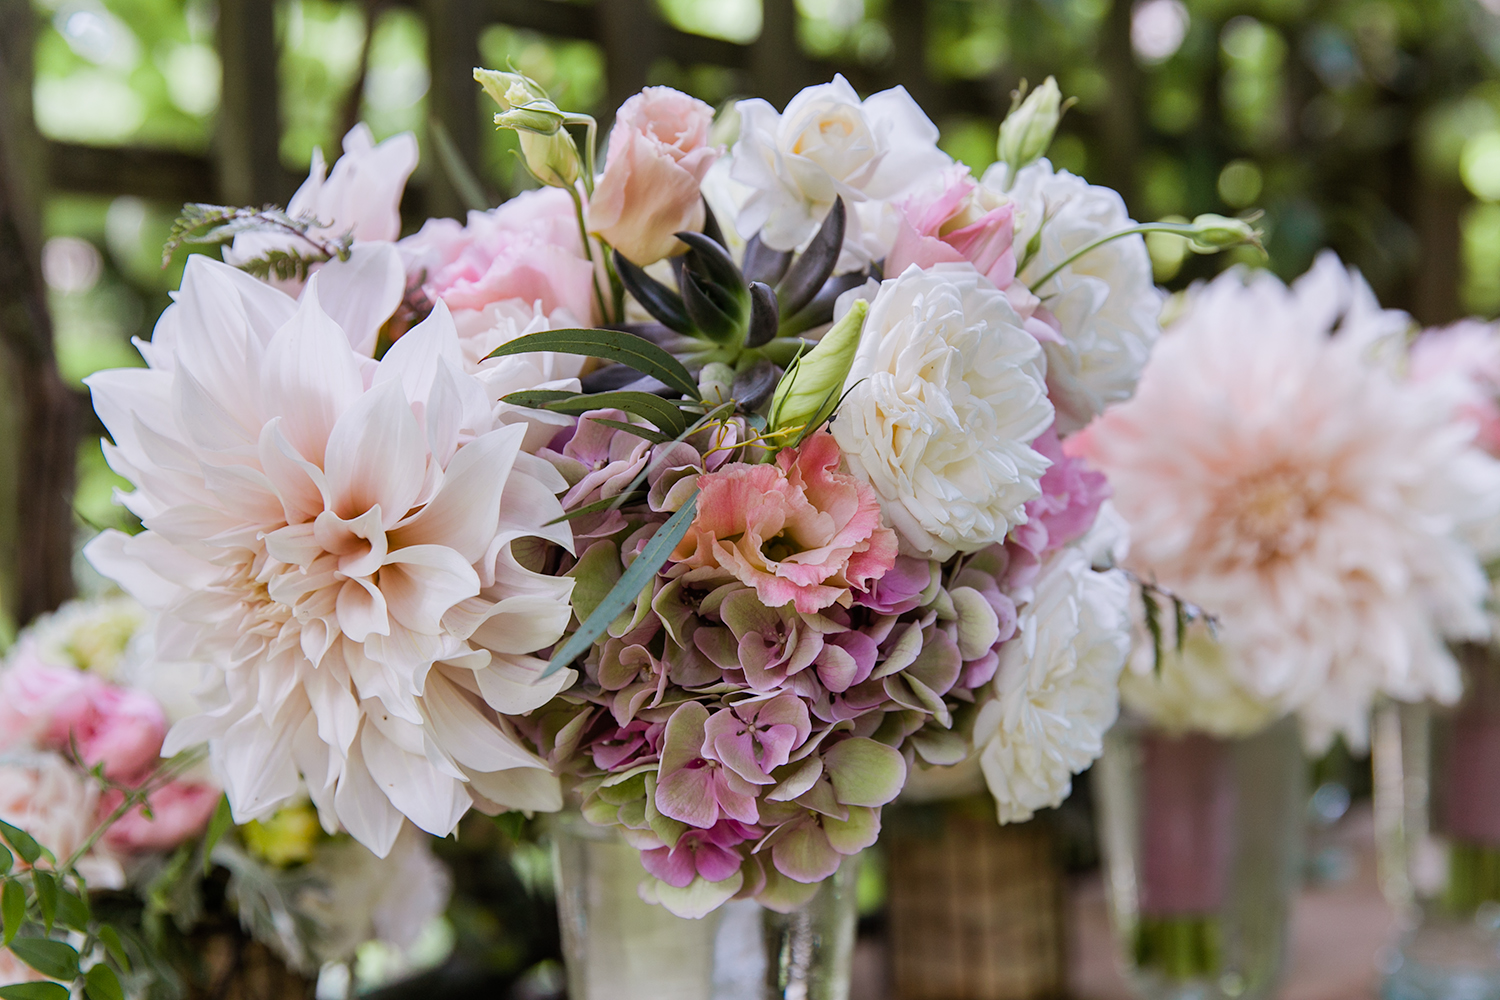 image of wedding bouquet and bridal party flowers by Garden Party Flowers of Bainbridge Island florist TJ Montague